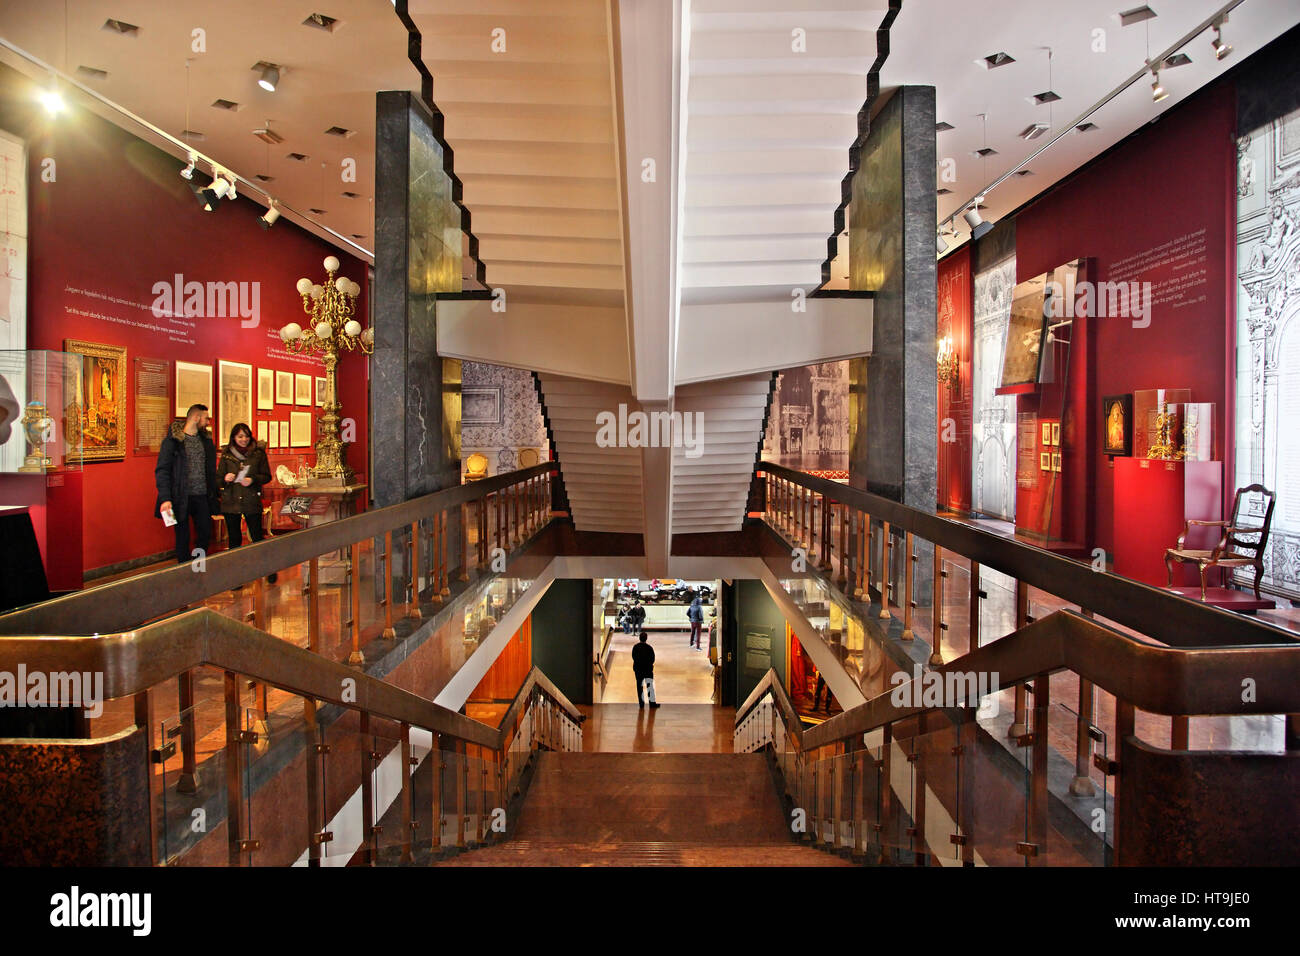 Inside the Budapest History Museum located in the Royal Palace, Buda castle, Budapest, Hungary Stock Photo